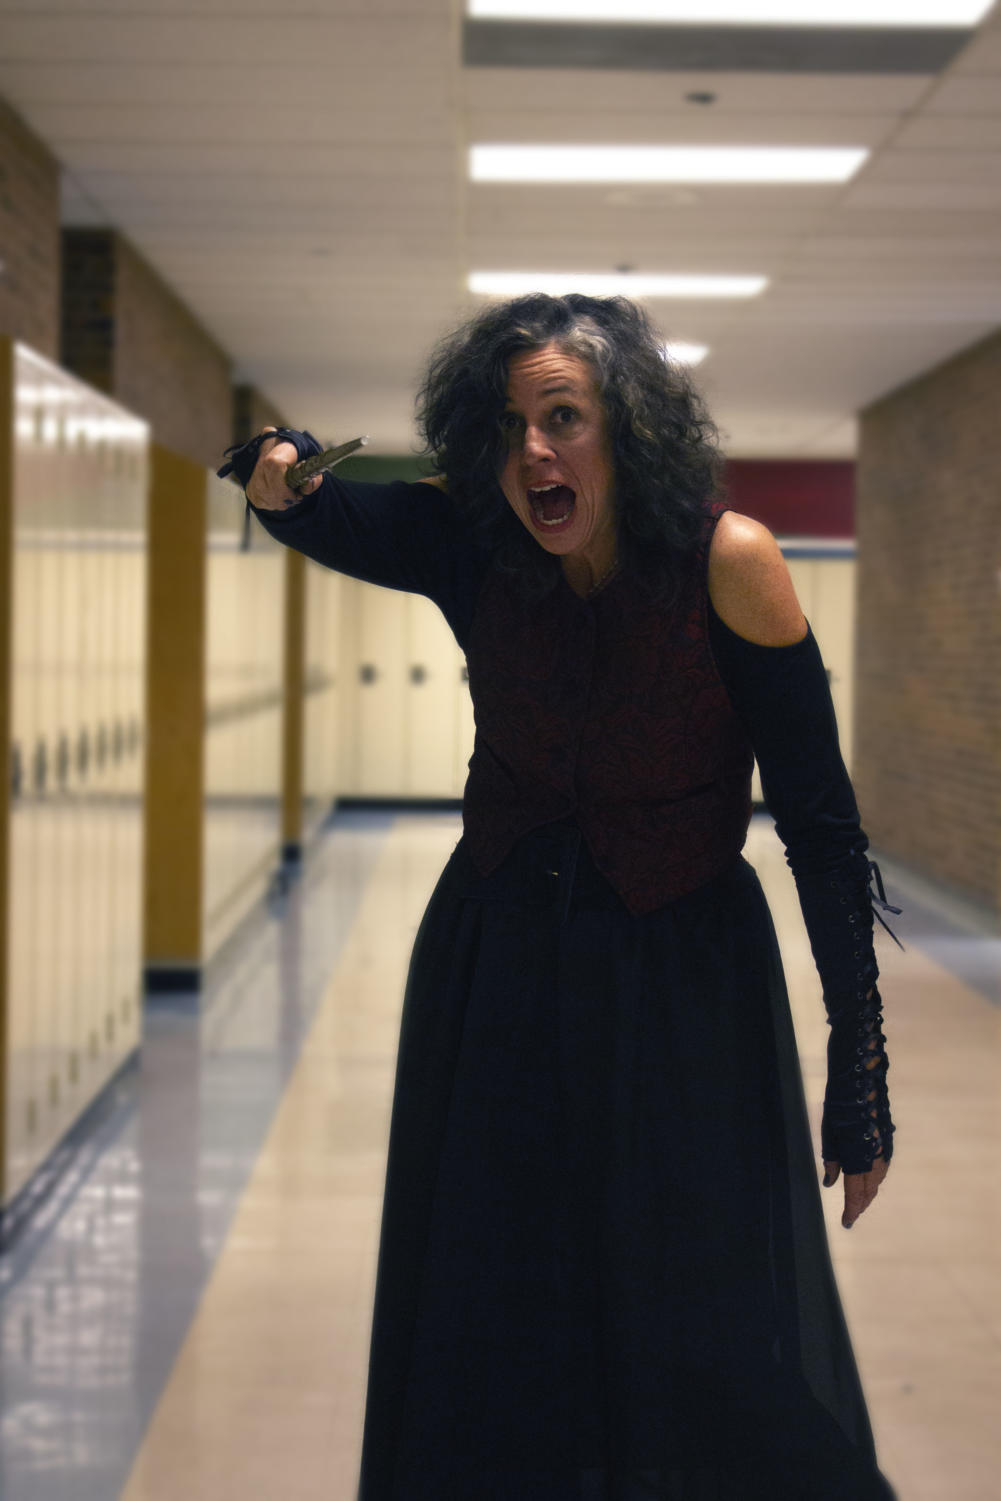 Also embracing a Harry Potter character, Ms. Jones does an incredible job portraying Bellatrix Lestrange.